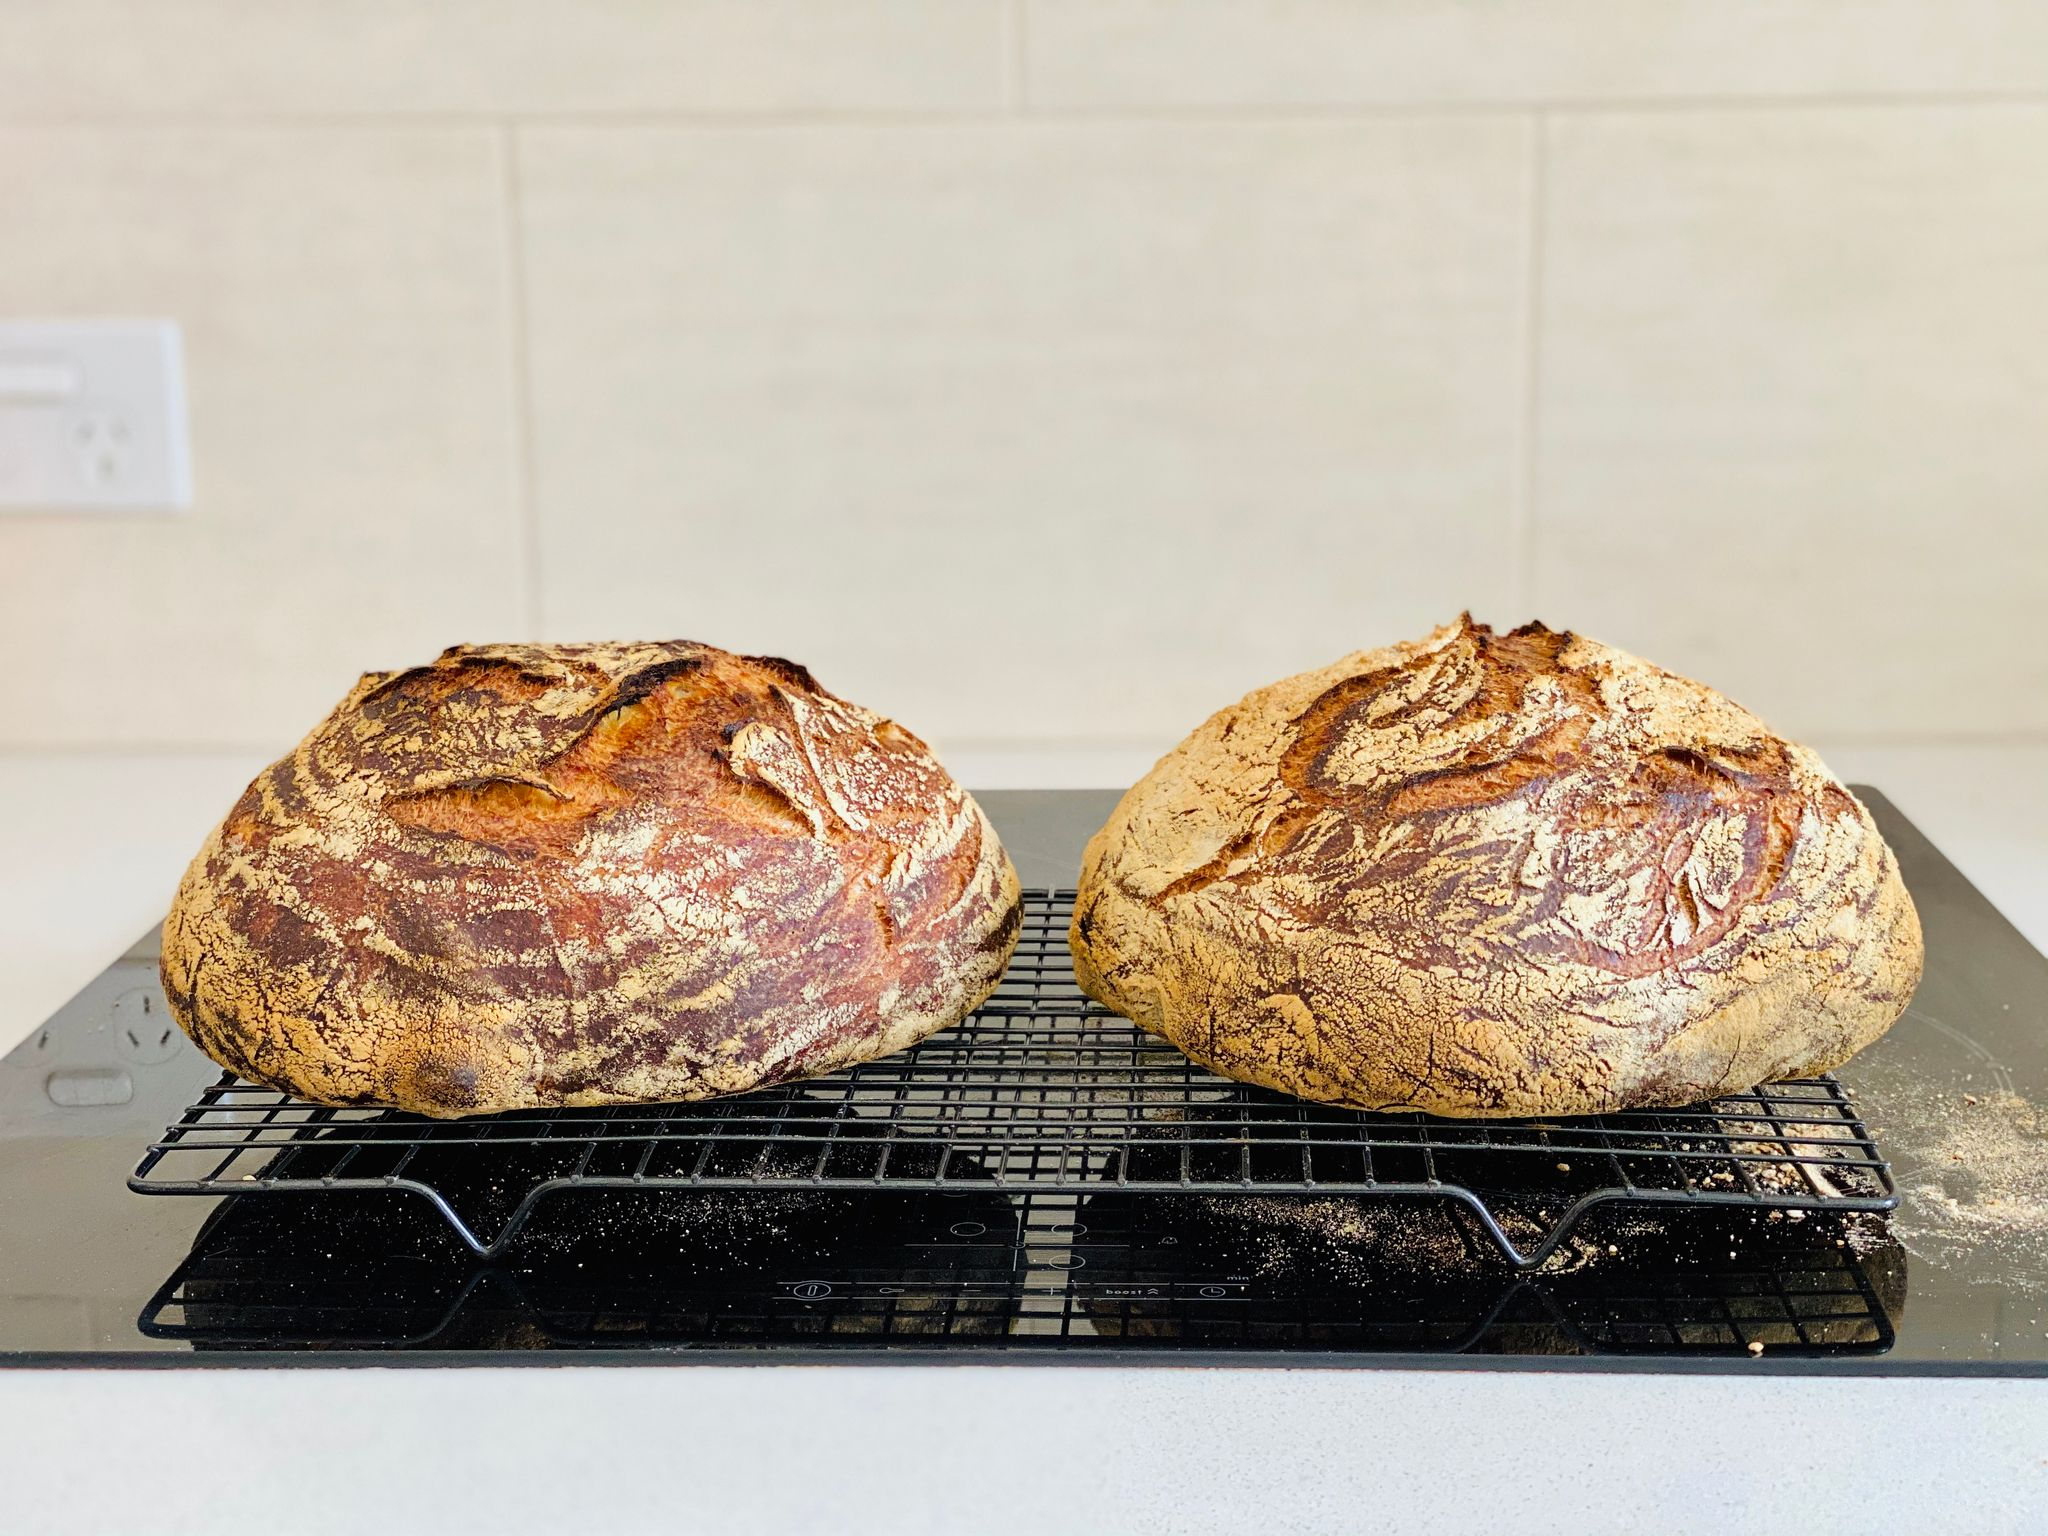 A photo of two dark brown loaves of bread sitting on a cooling rack.